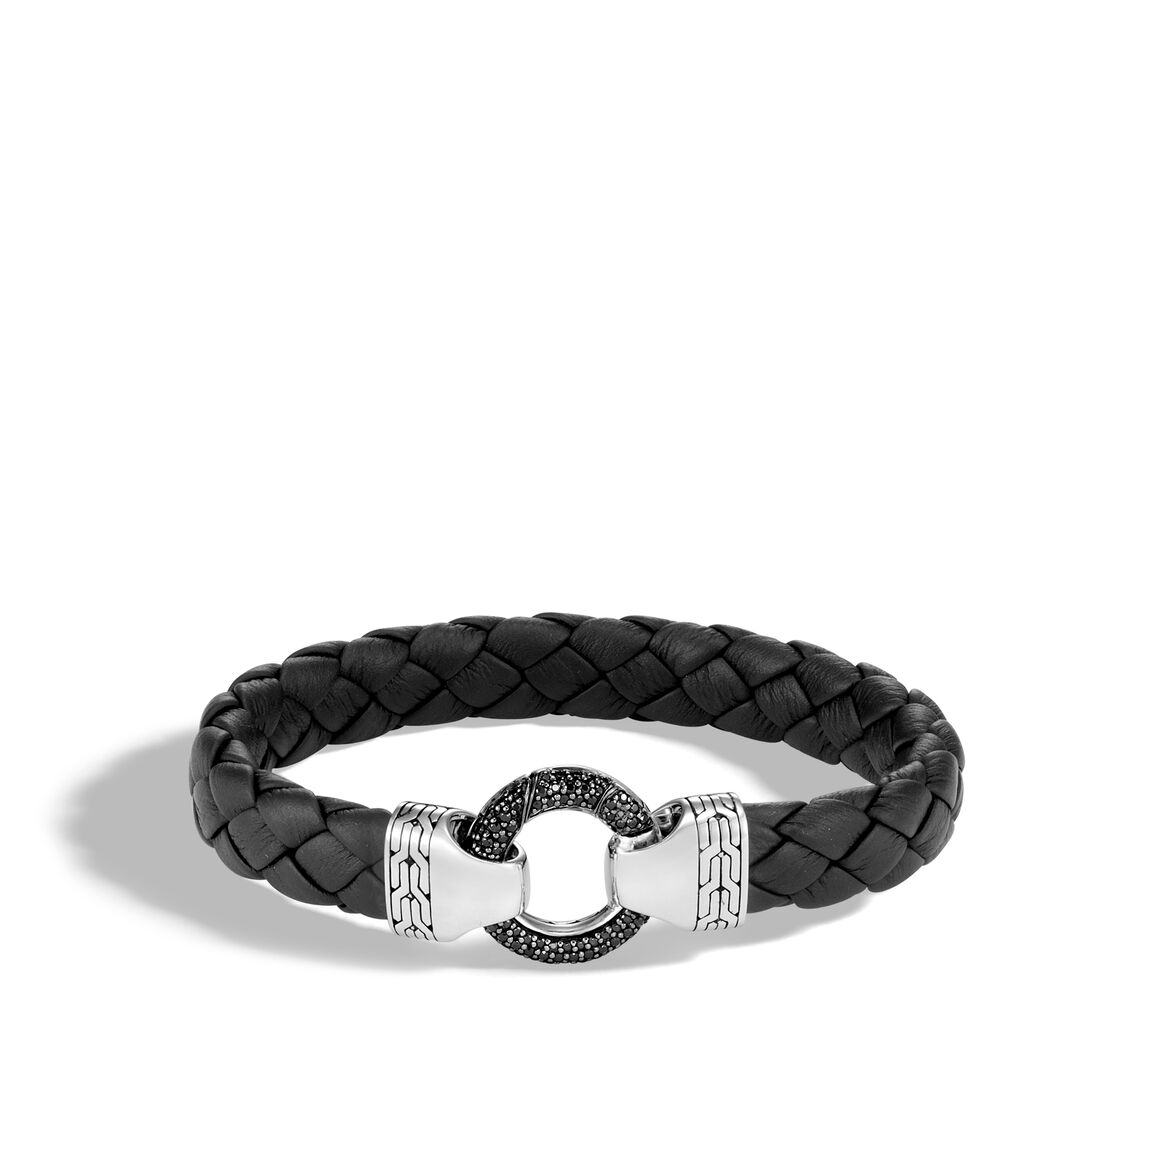 Classic Chain 12MM Ring Clasp Bracelet, Silver, Gem, Leather